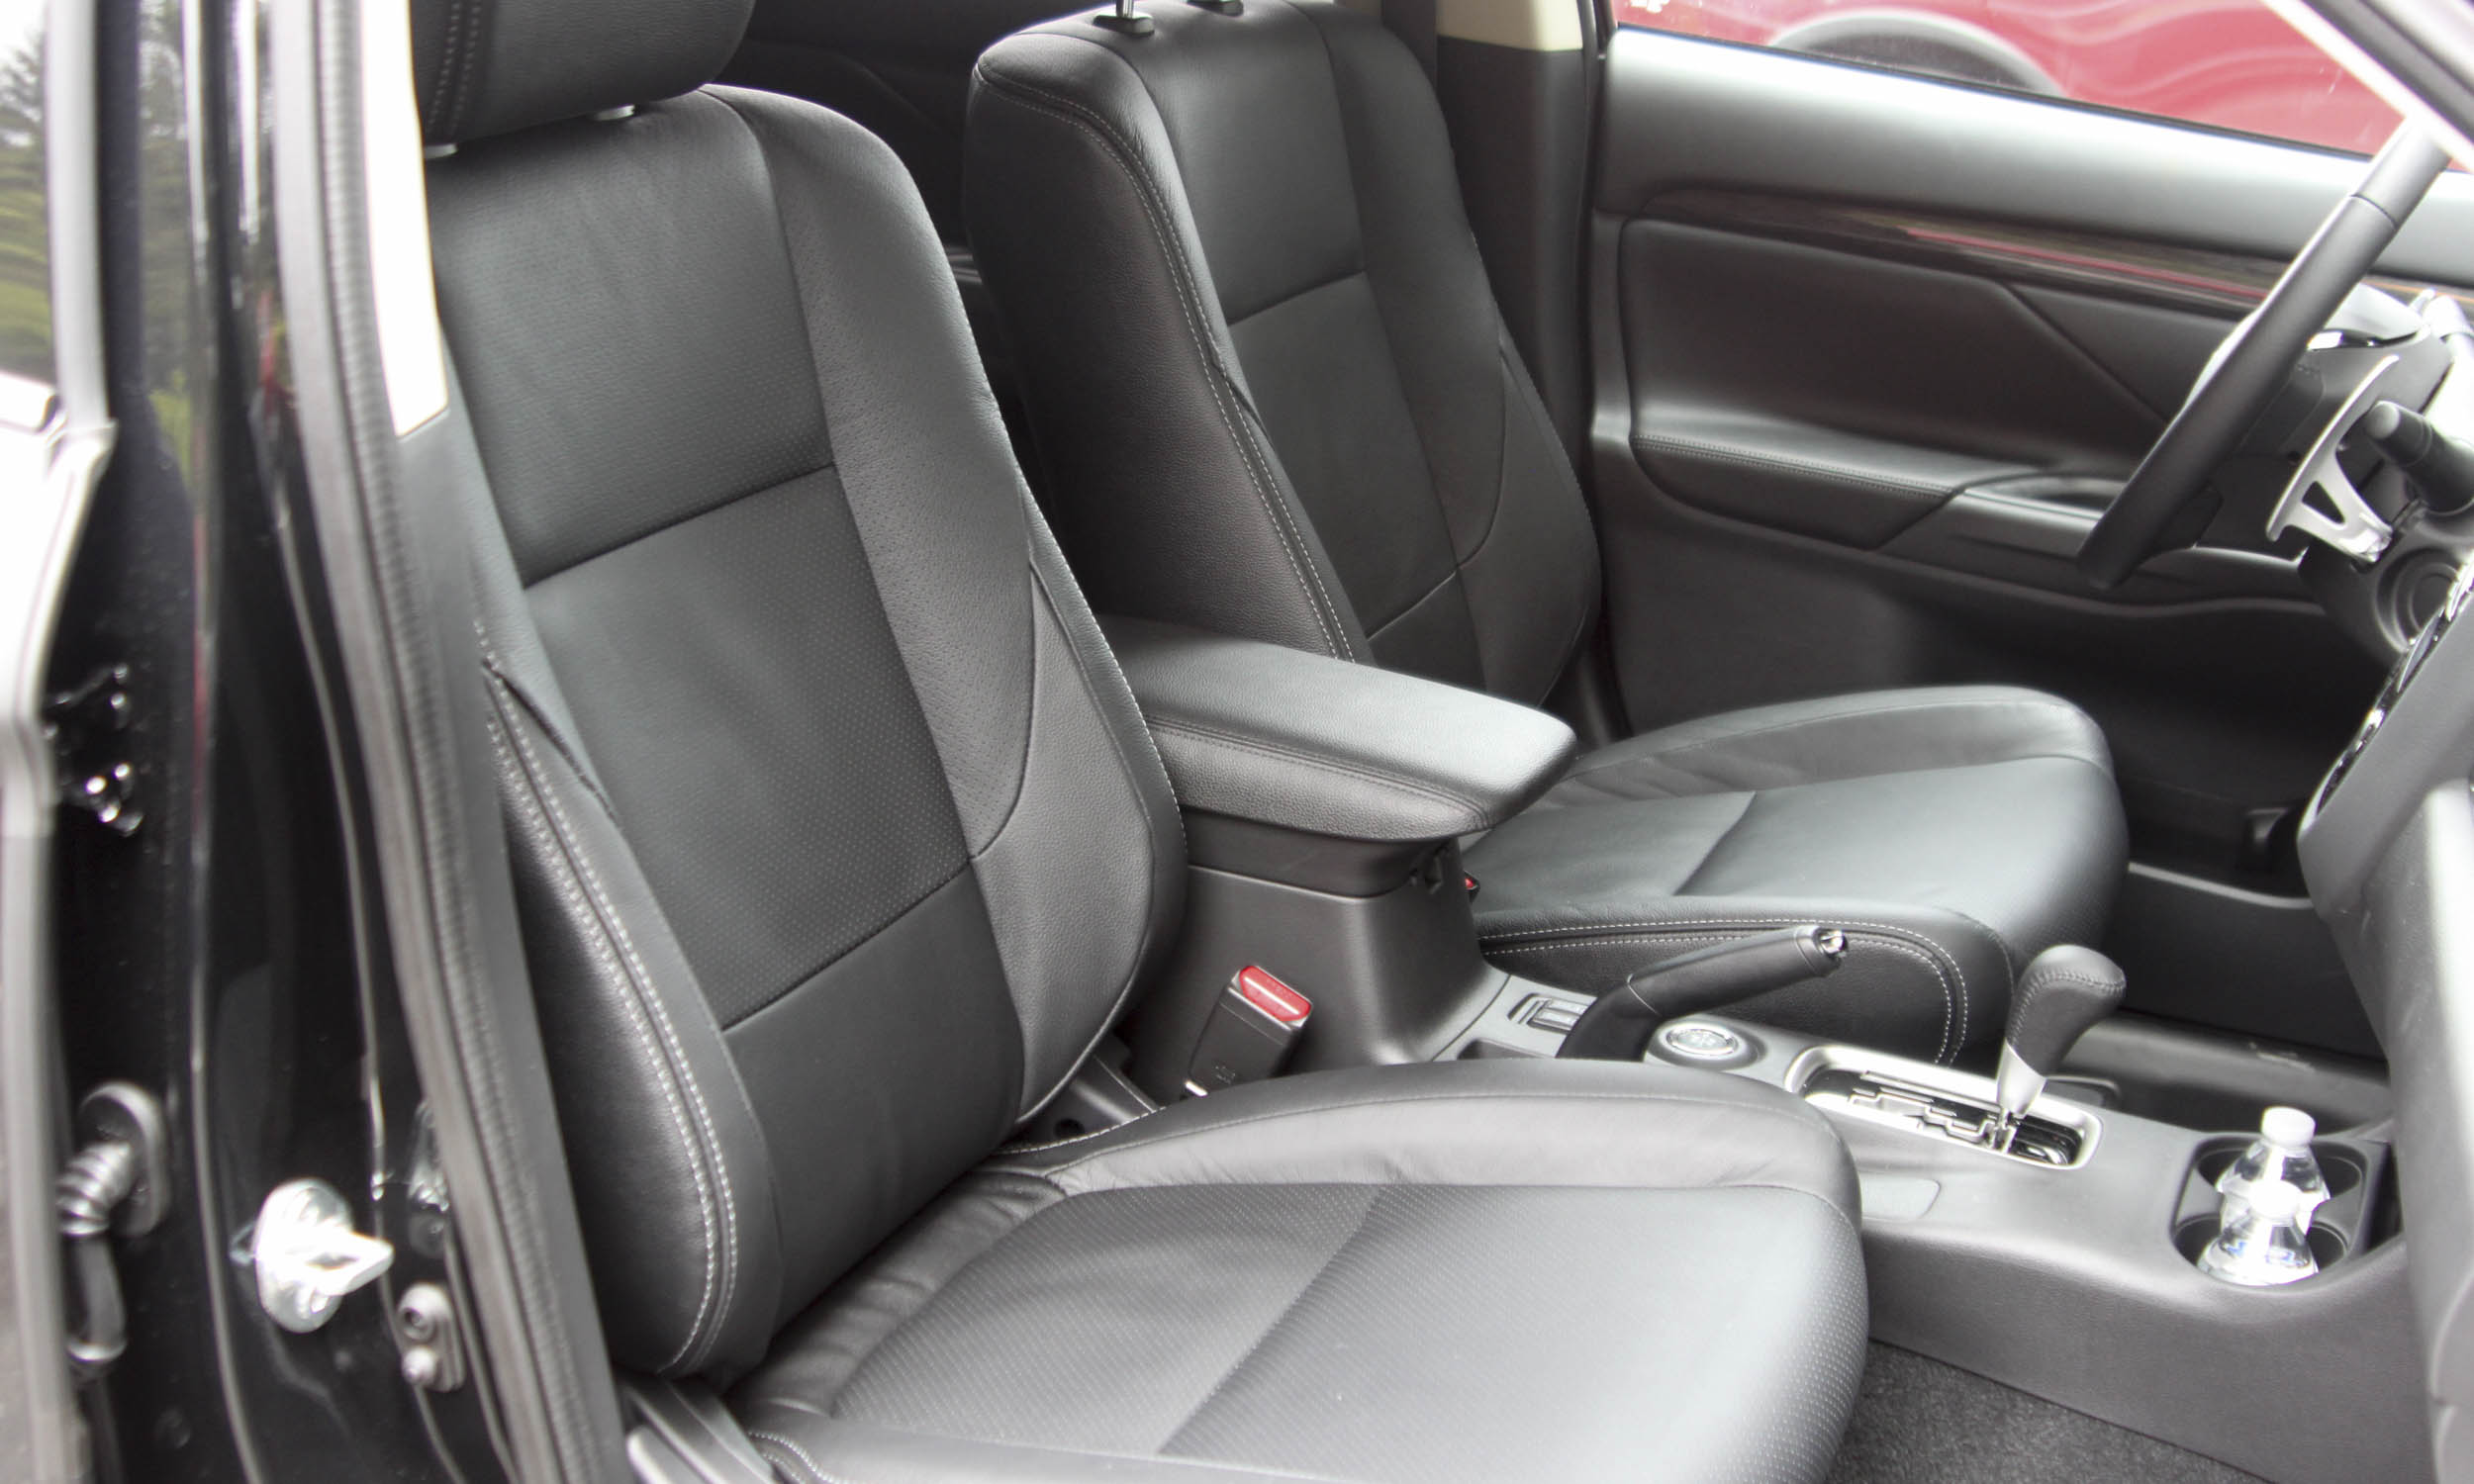 perry stern automotive content experience inner space the 2016 mitsubishi outlander - 2016 Mitsubishi Outlander Interior